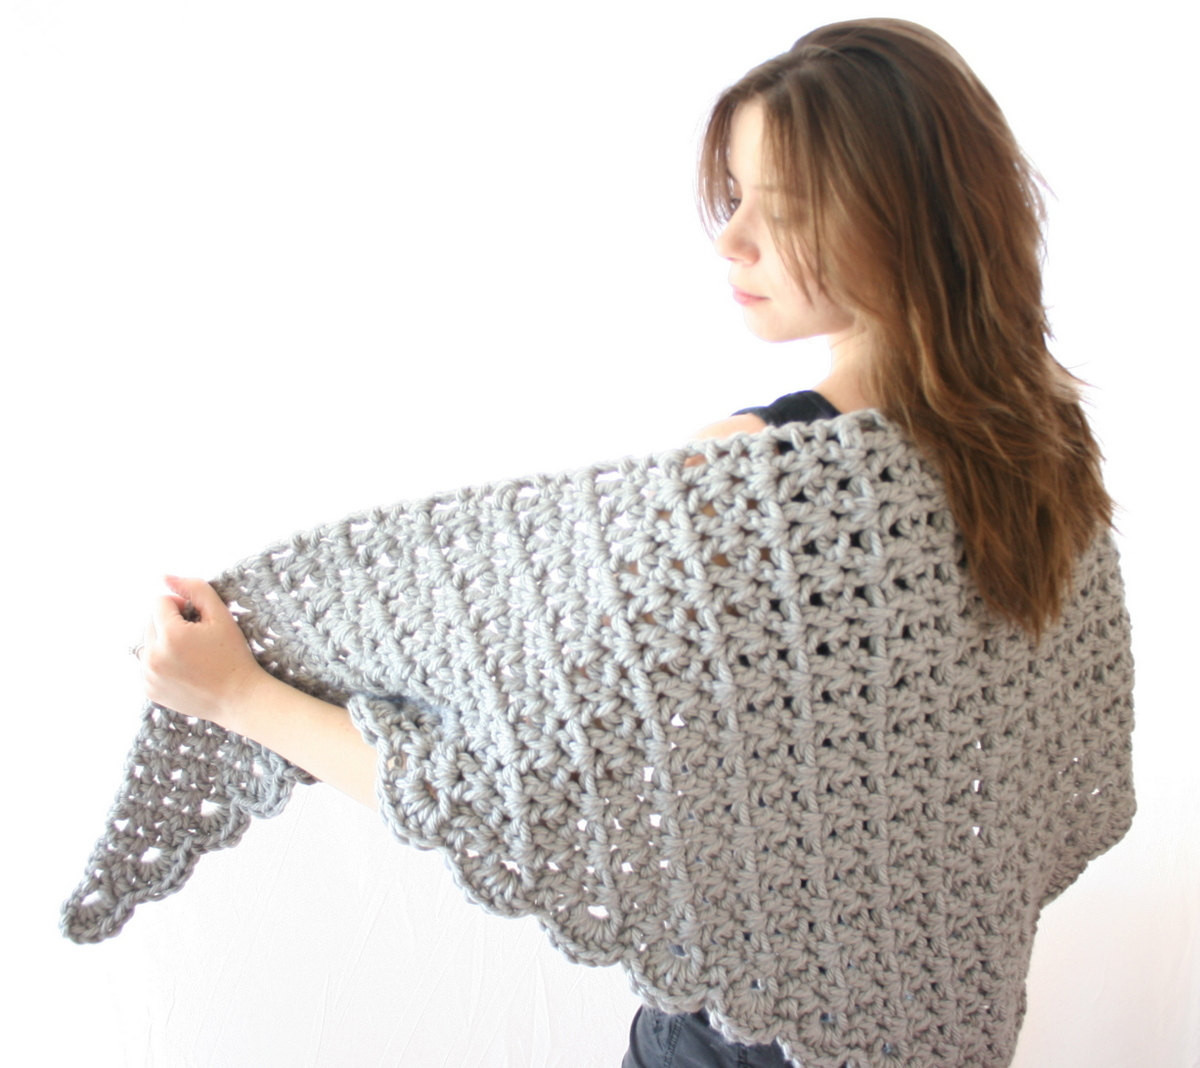 Chunky Yarn Crochet Patterns Elegant Chunky Shawl Crochet Pattern Crochet Wrap Of Amazing 46 Photos Chunky Yarn Crochet Patterns